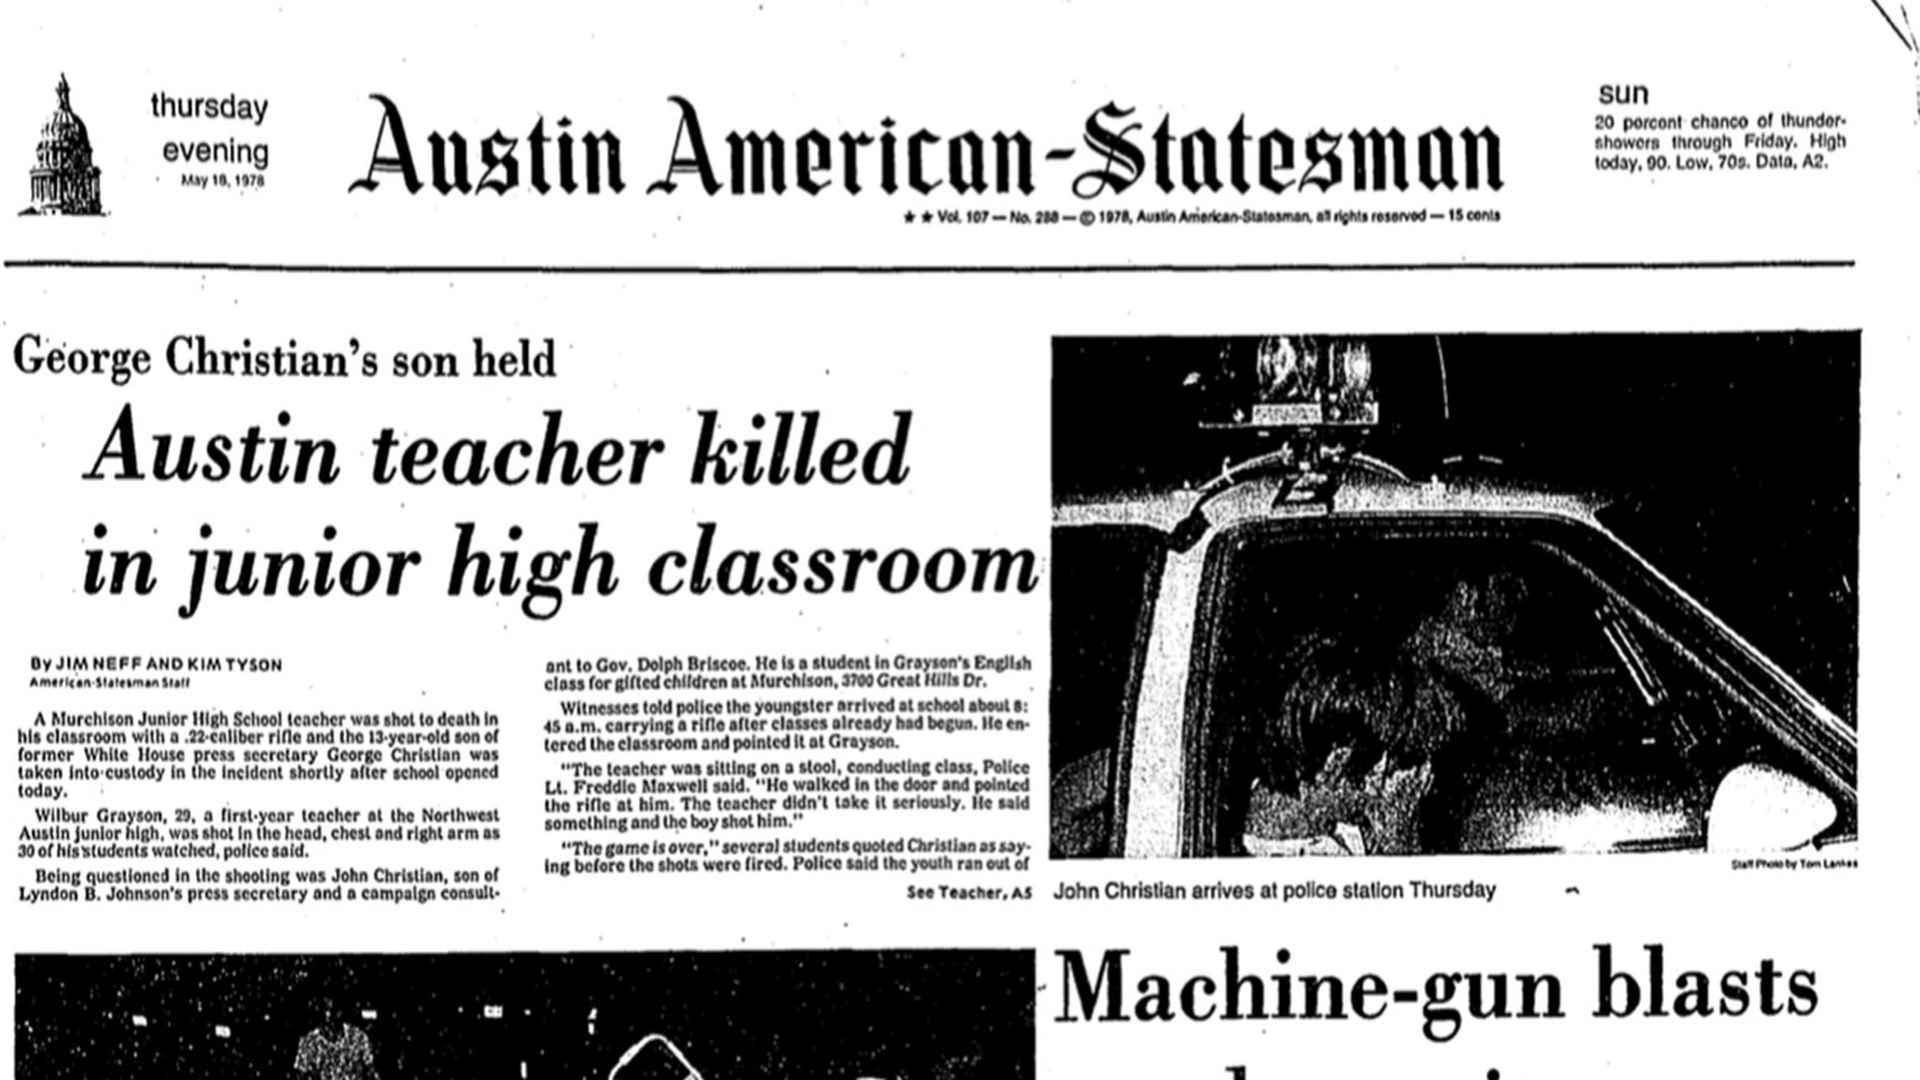 Front page of the Austin American-Statesman from May 18, 1978